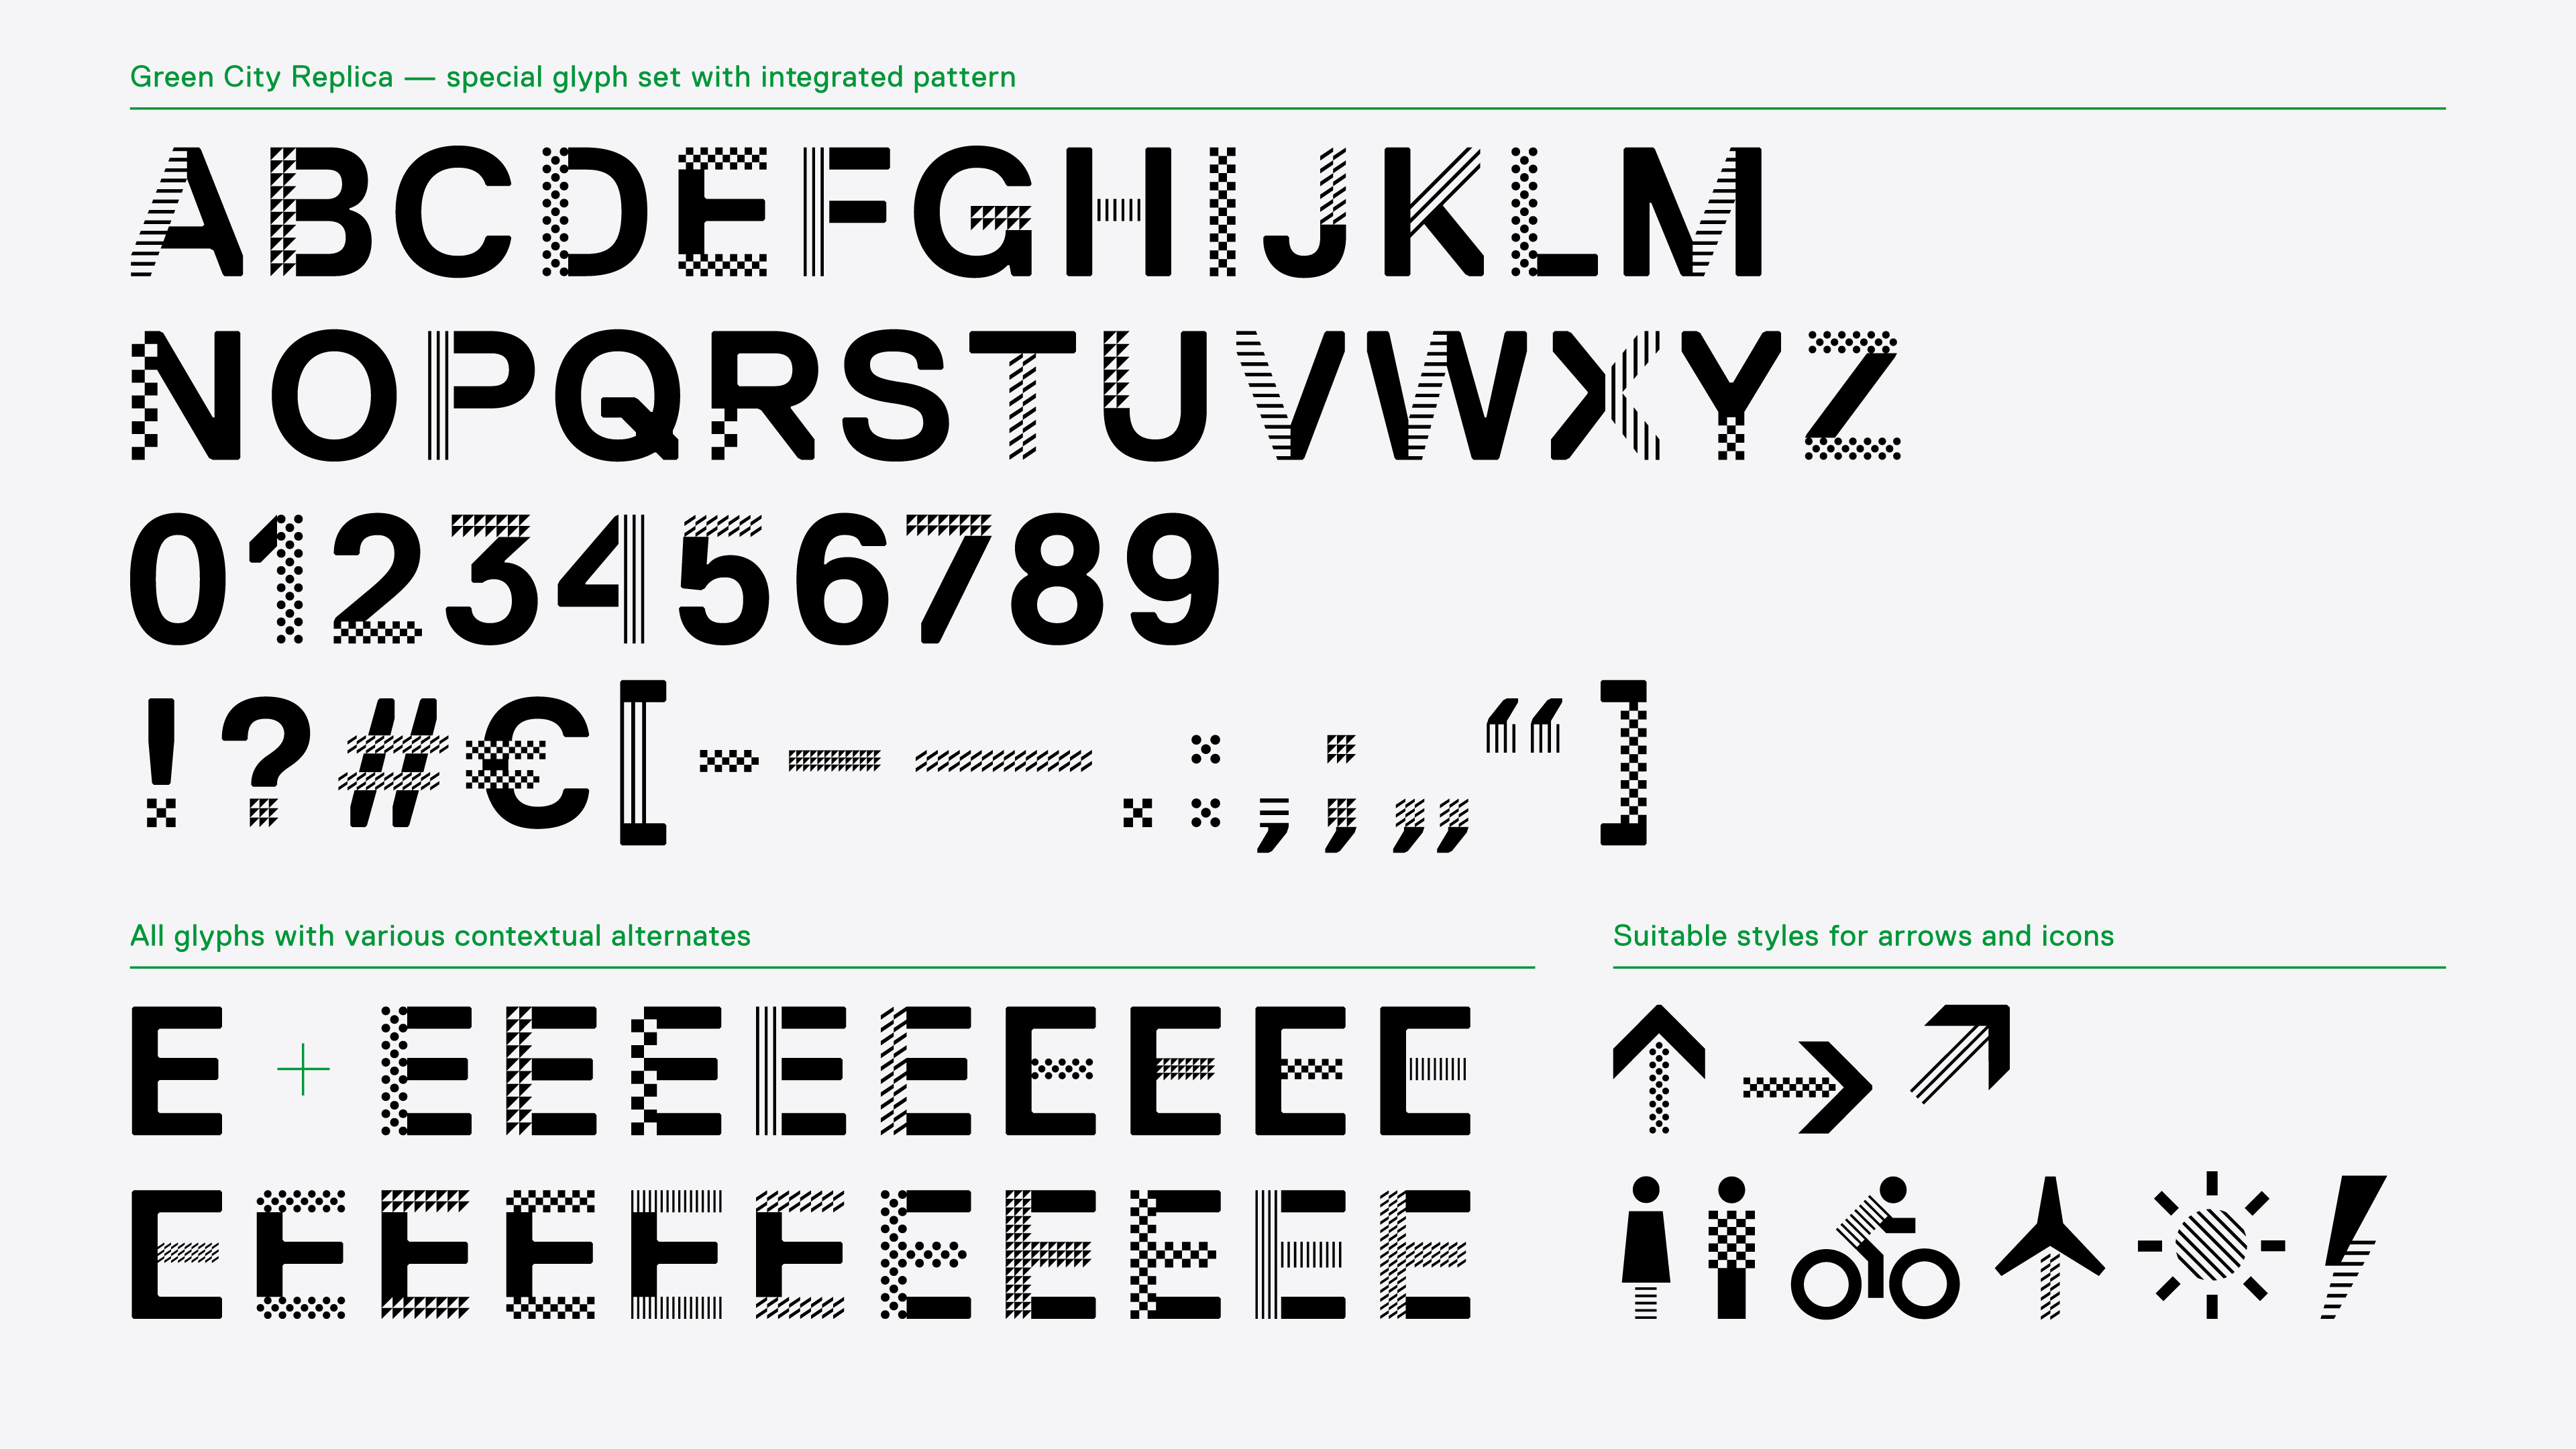 The picture shows the typeface glyphs.